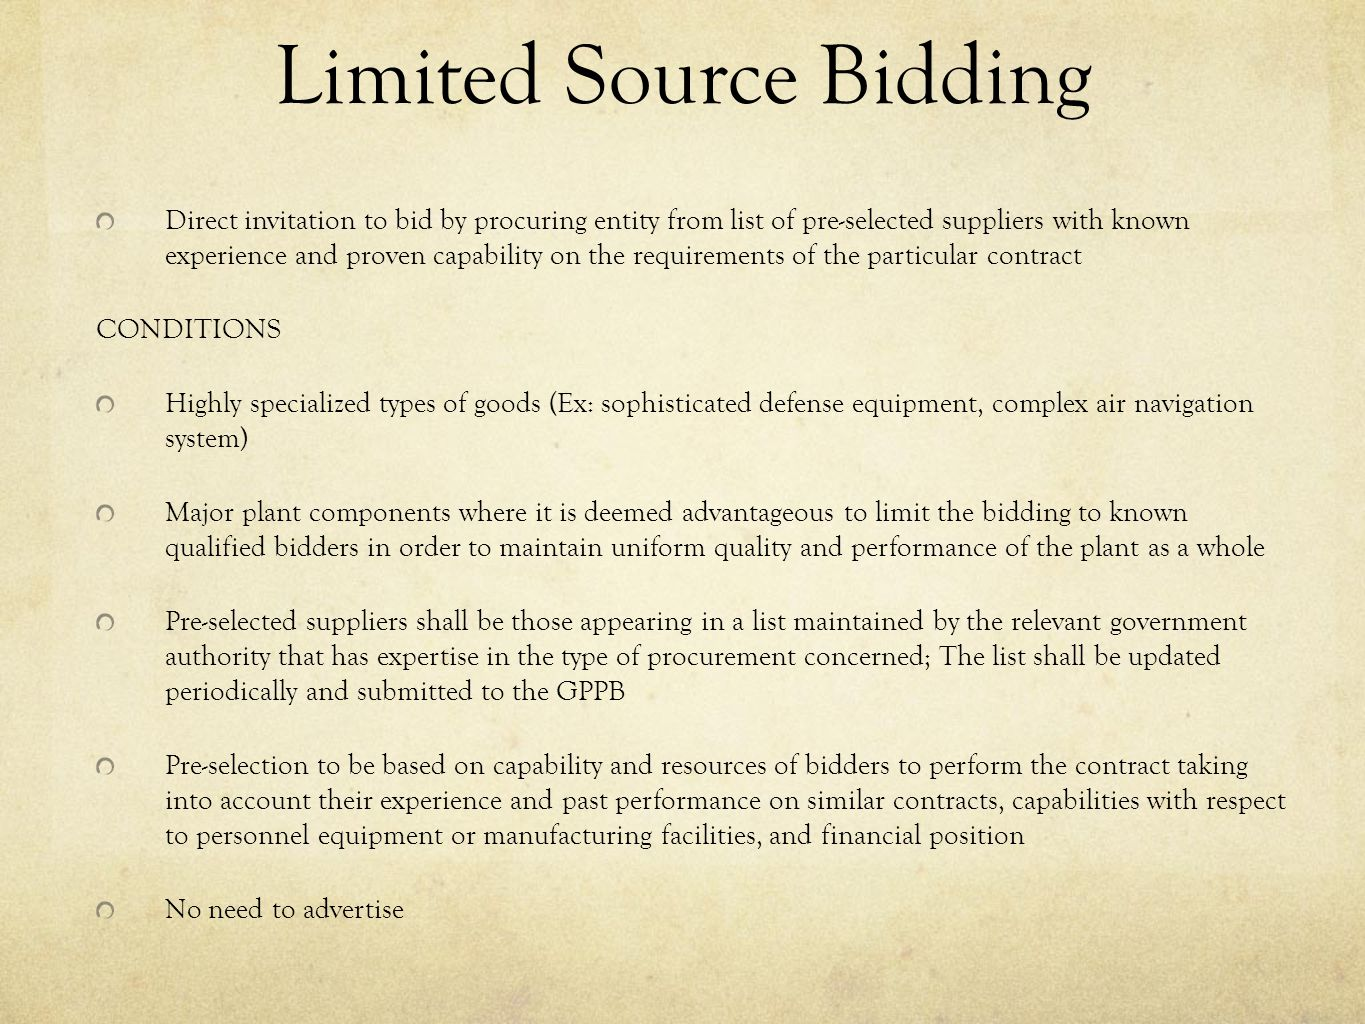 Limited Source Bidding Direct invitation to bid by procuring entity from list of pre-selected suppliers with known experience and proven capability on the requirements of the particular contract CONDITIONS Highly specialized types of goods (Ex: sophisticated defense equipment, complex air navigation system) Major plant components where it is deemed advantageous to limit the bidding to known qualified bidders in order to maintain uniform quality and performance of the plant as a whole Pre-selected suppliers shall be those appearing in a list maintained by the relevant government authority that has expertise in the type of procurement concerned; The list shall be updated periodically and submitted to the GPPB Pre-selection to be based on capability and resources of bidders to perform the contract taking into account their experience and past performance on similar contracts, capabilities with respect to personnel equipment or manufacturing facilities, and financial position No need to advertise